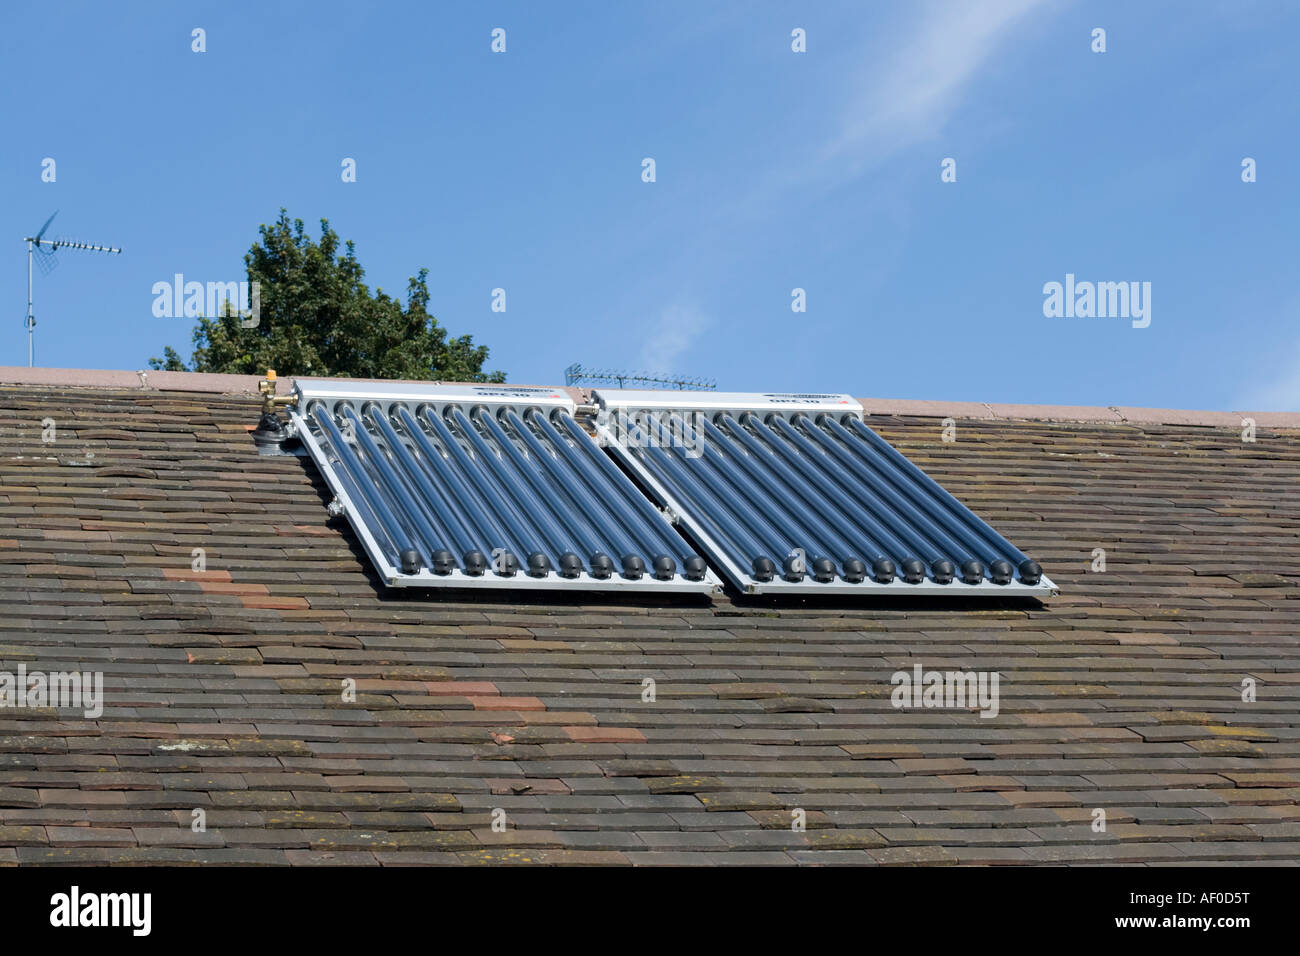 Solar thermal panels with evacuated tubes on roof of Worcestershire House providing domestic hot water UK Stock Photo